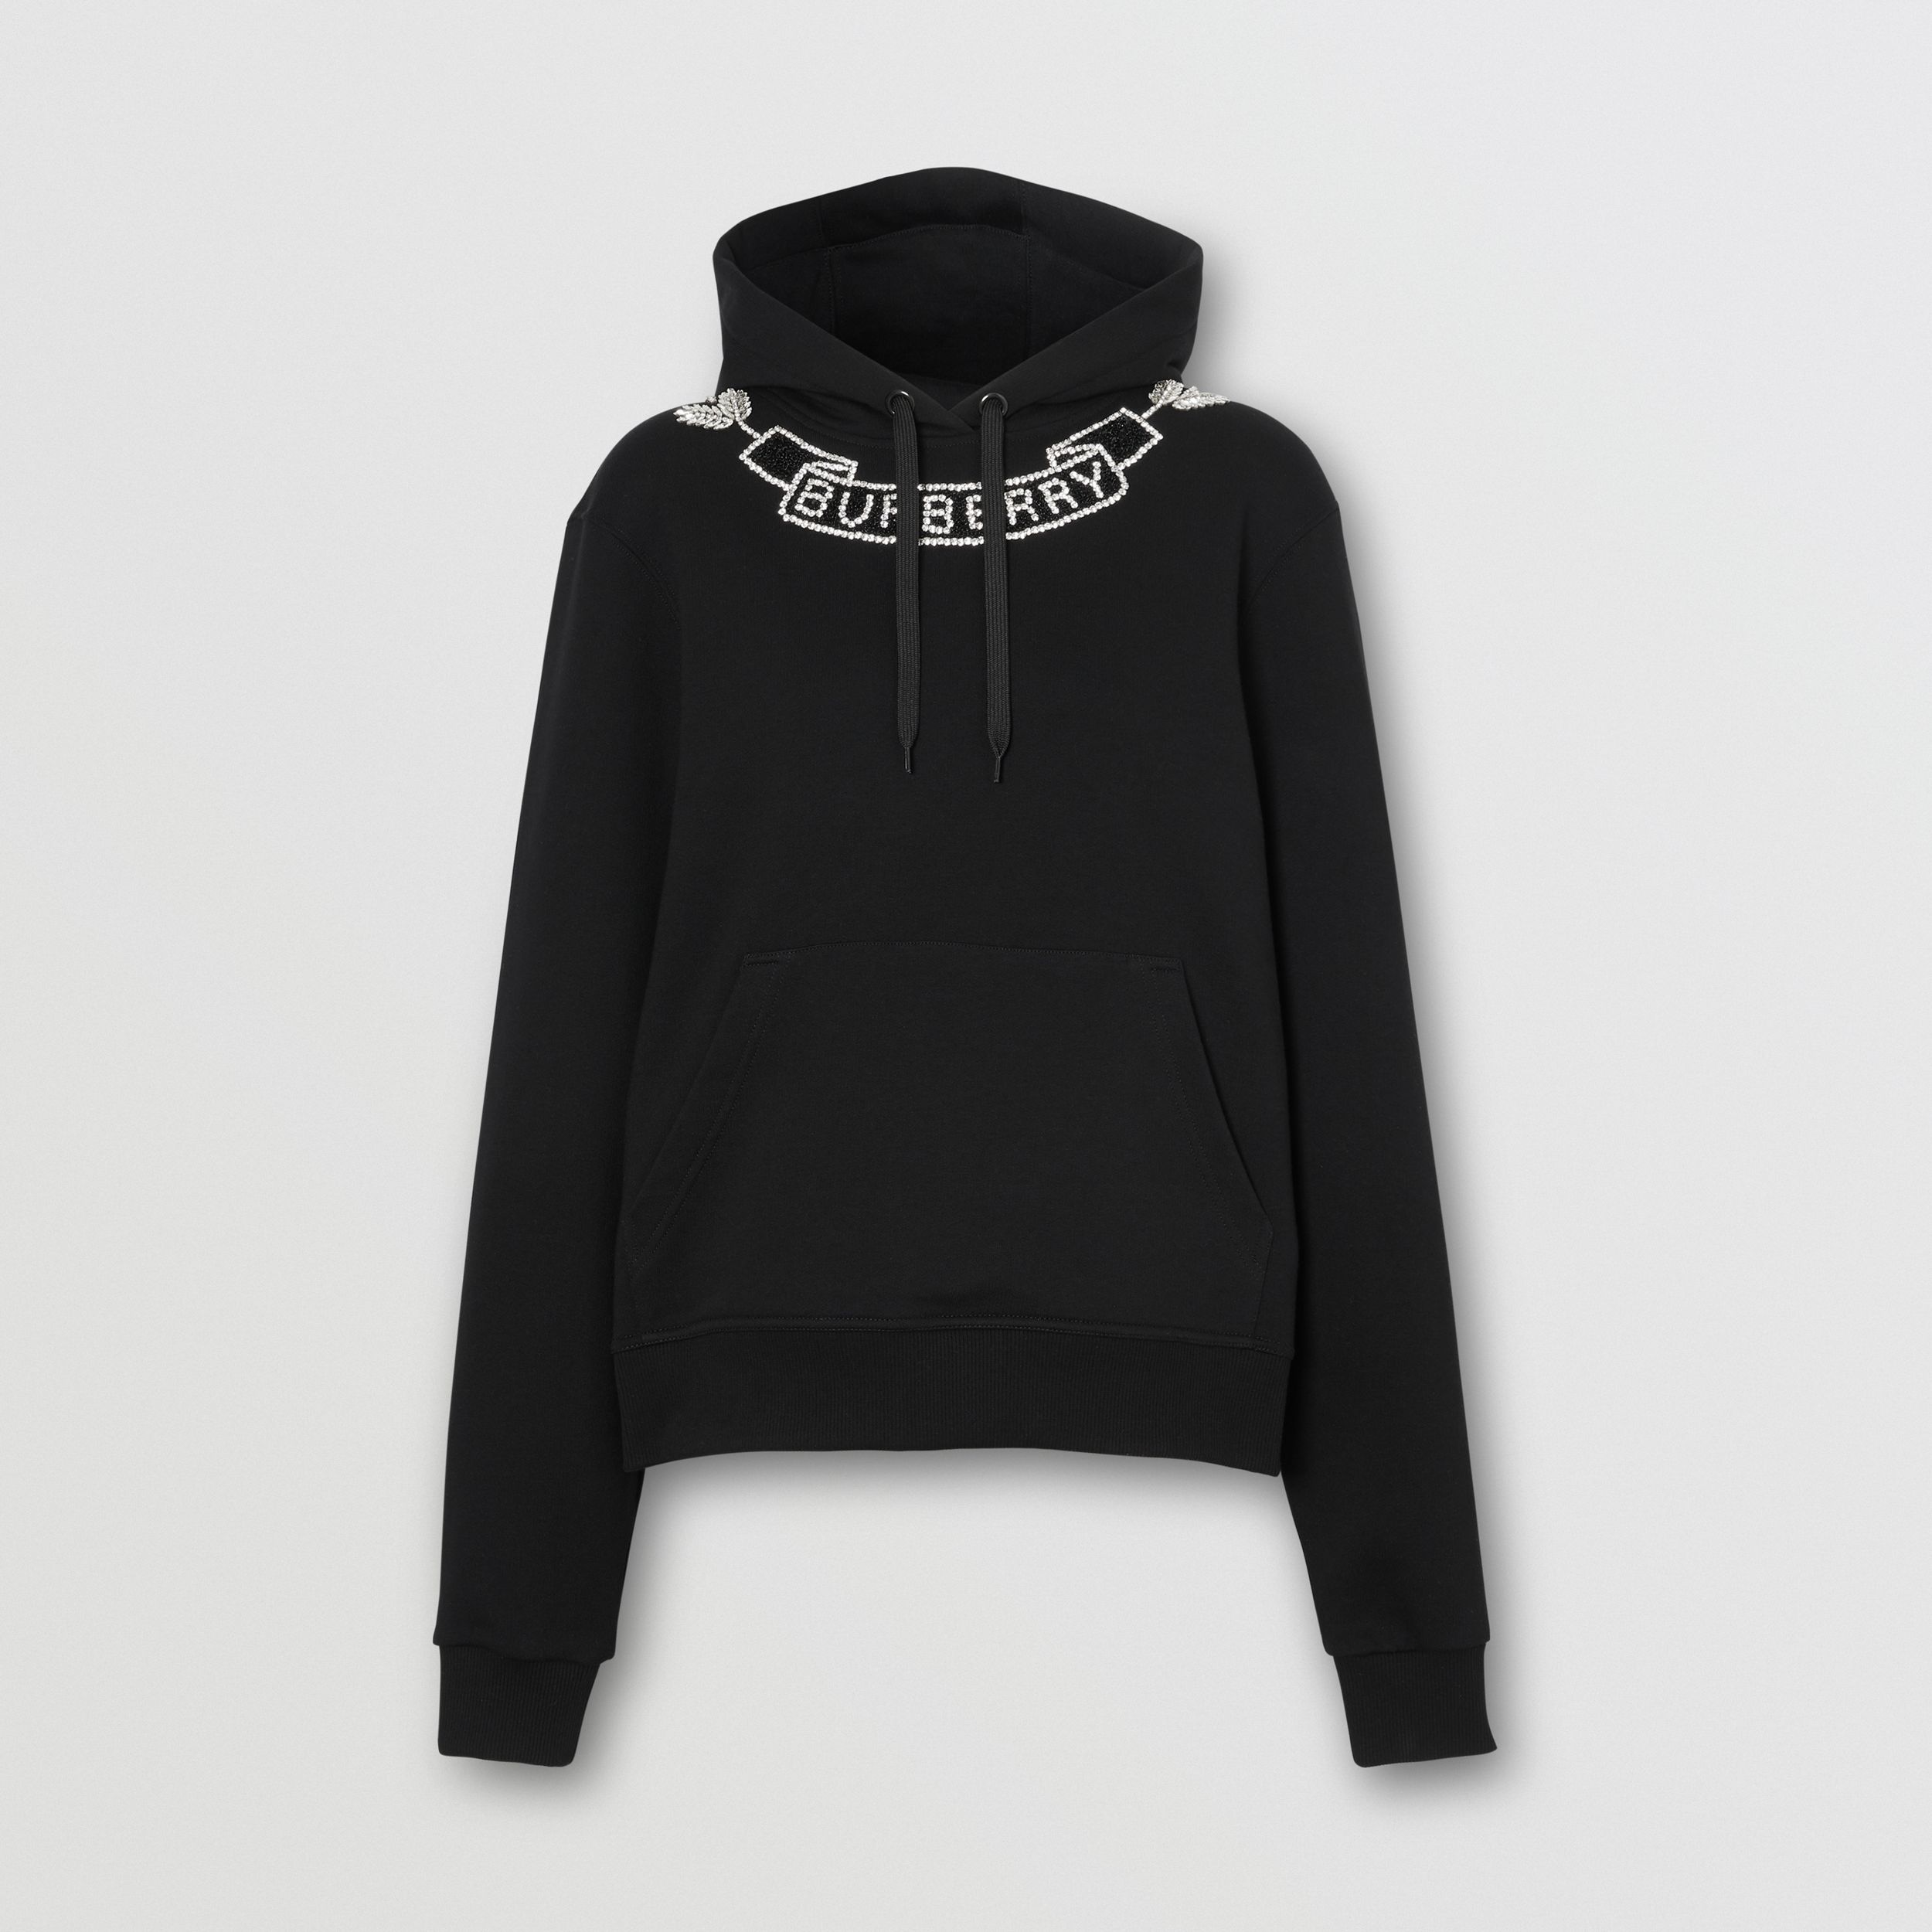 Embellished Cotton Oversized Hoodie in Black - Women | Burberry United States - 4